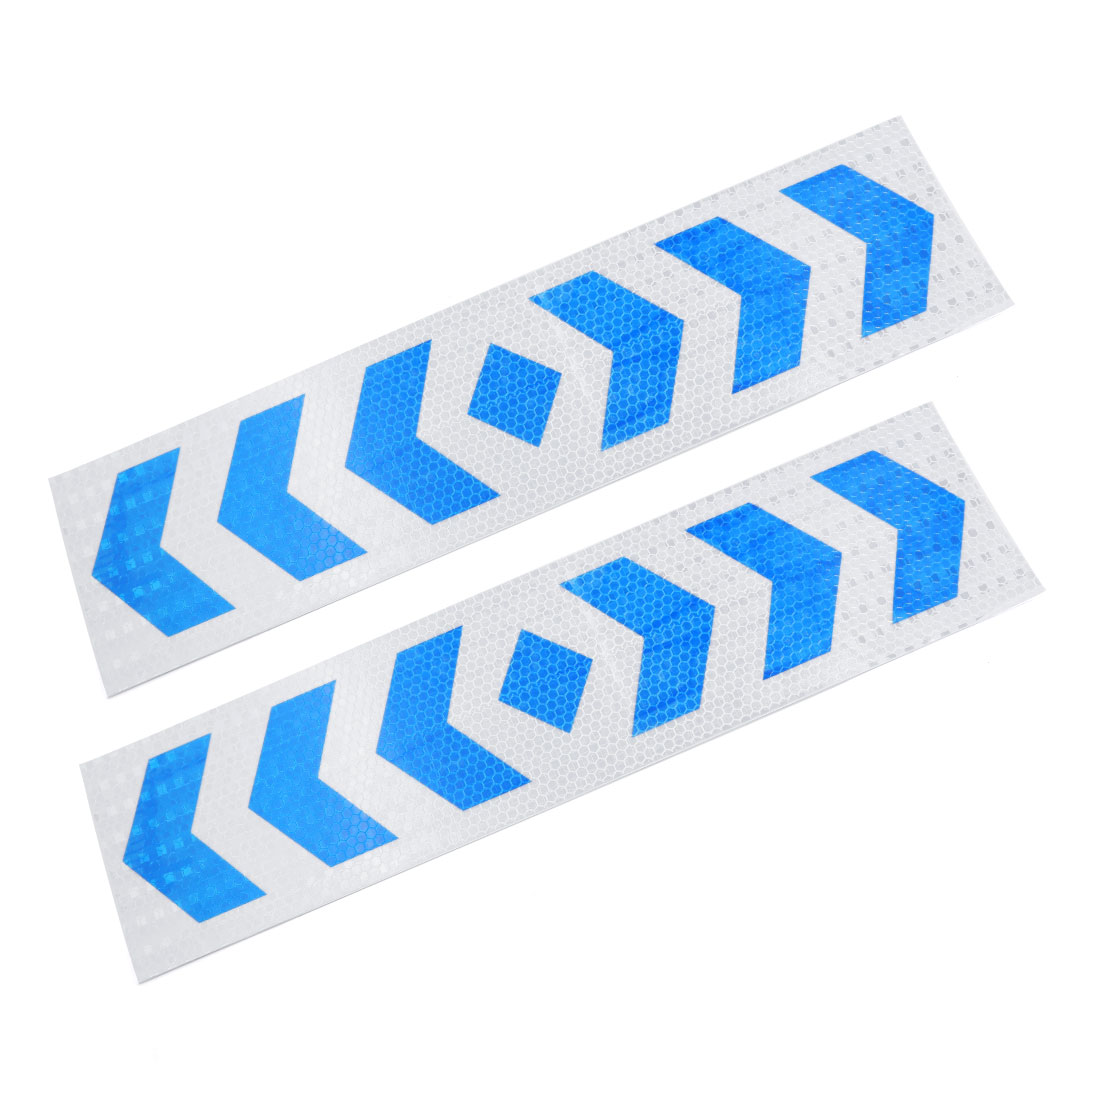 Car Exterior Decor Arrows Printed Reflective Sticker Adhesive Decal Strip 2pcs